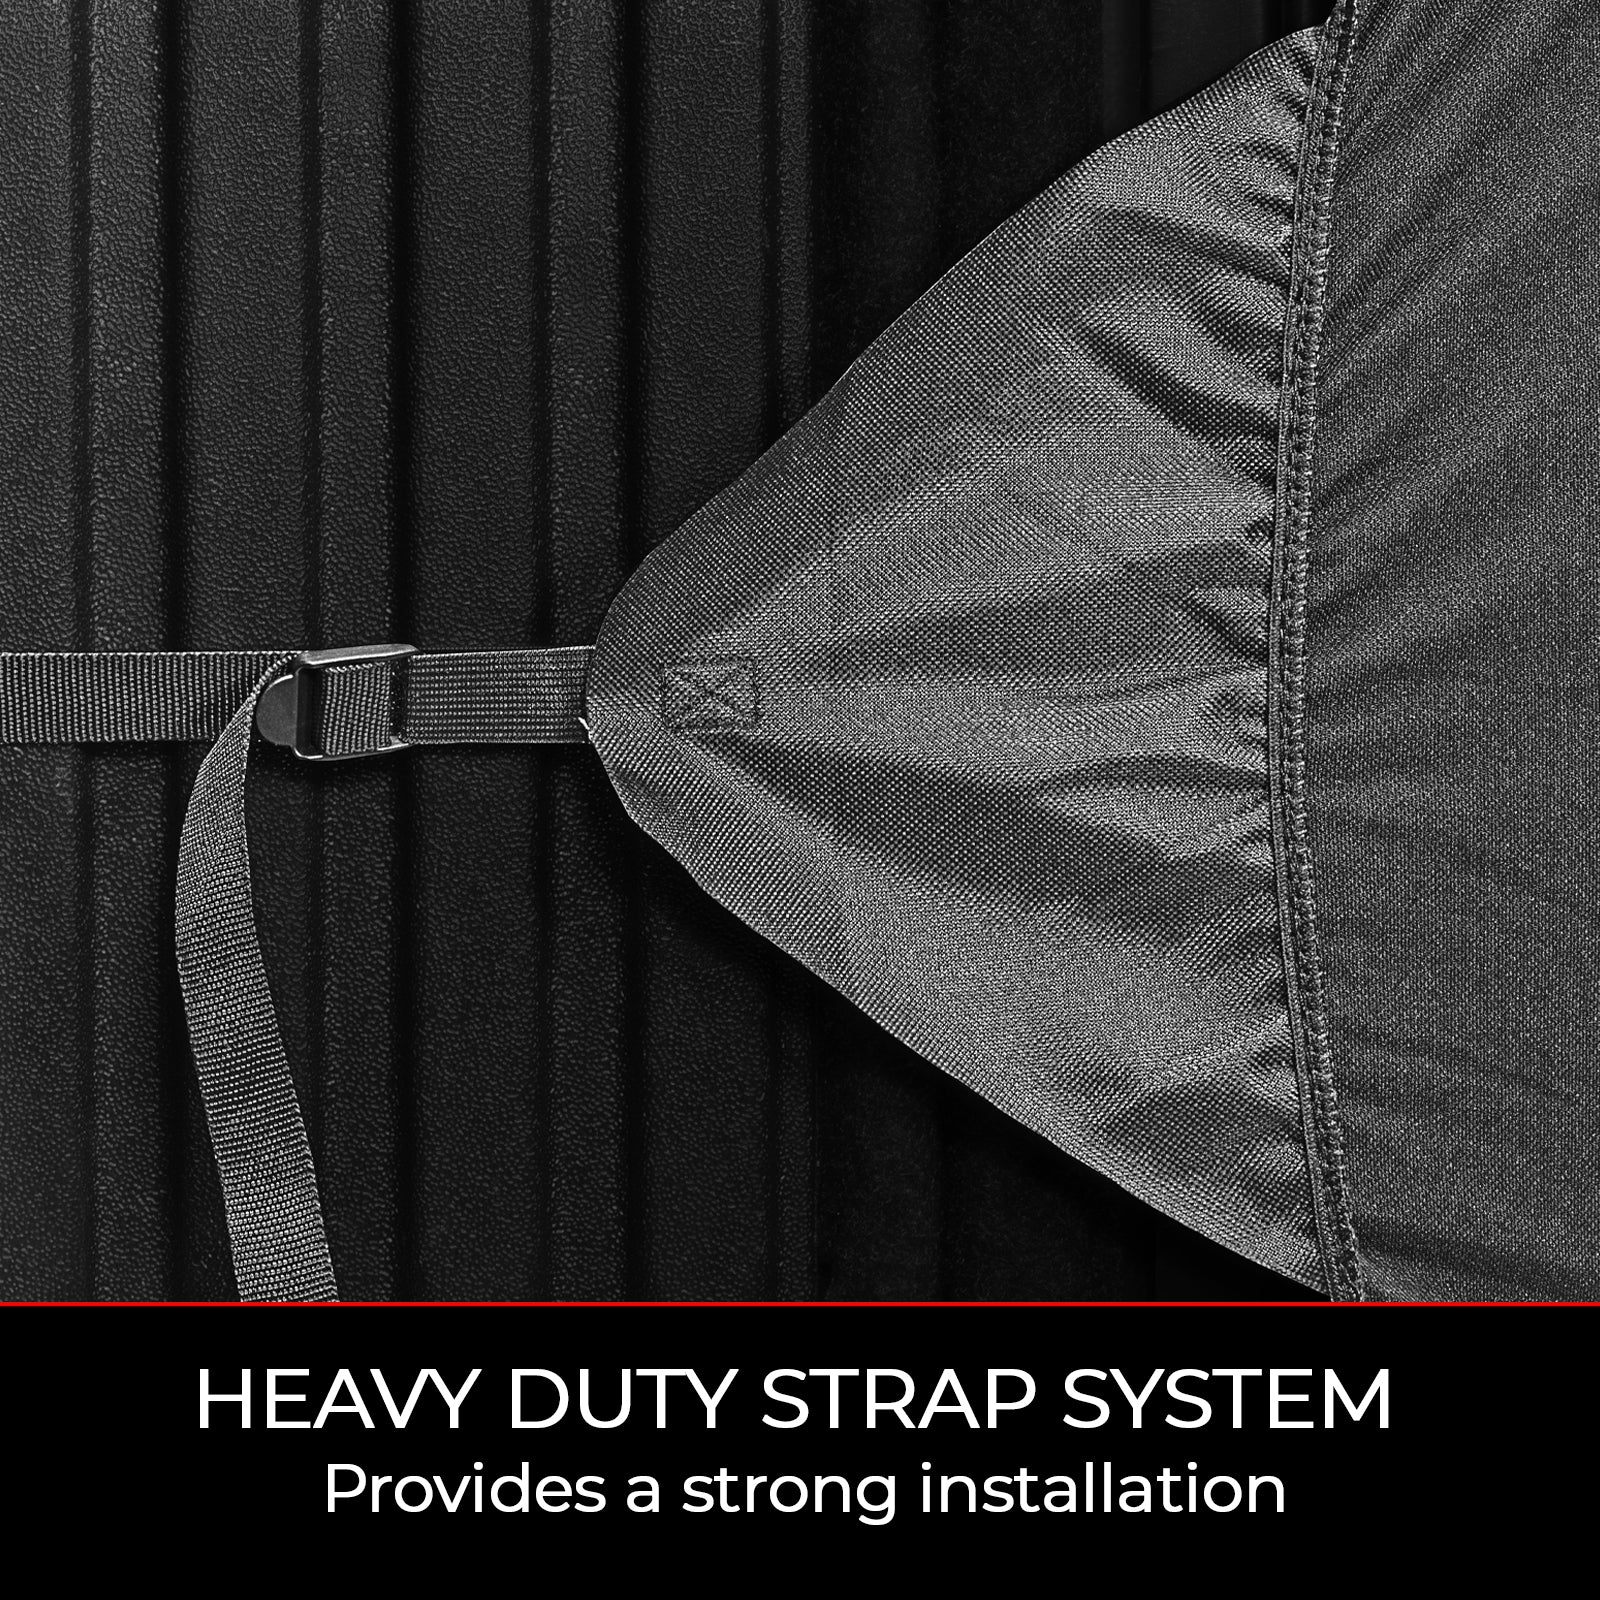 Secure Installation System